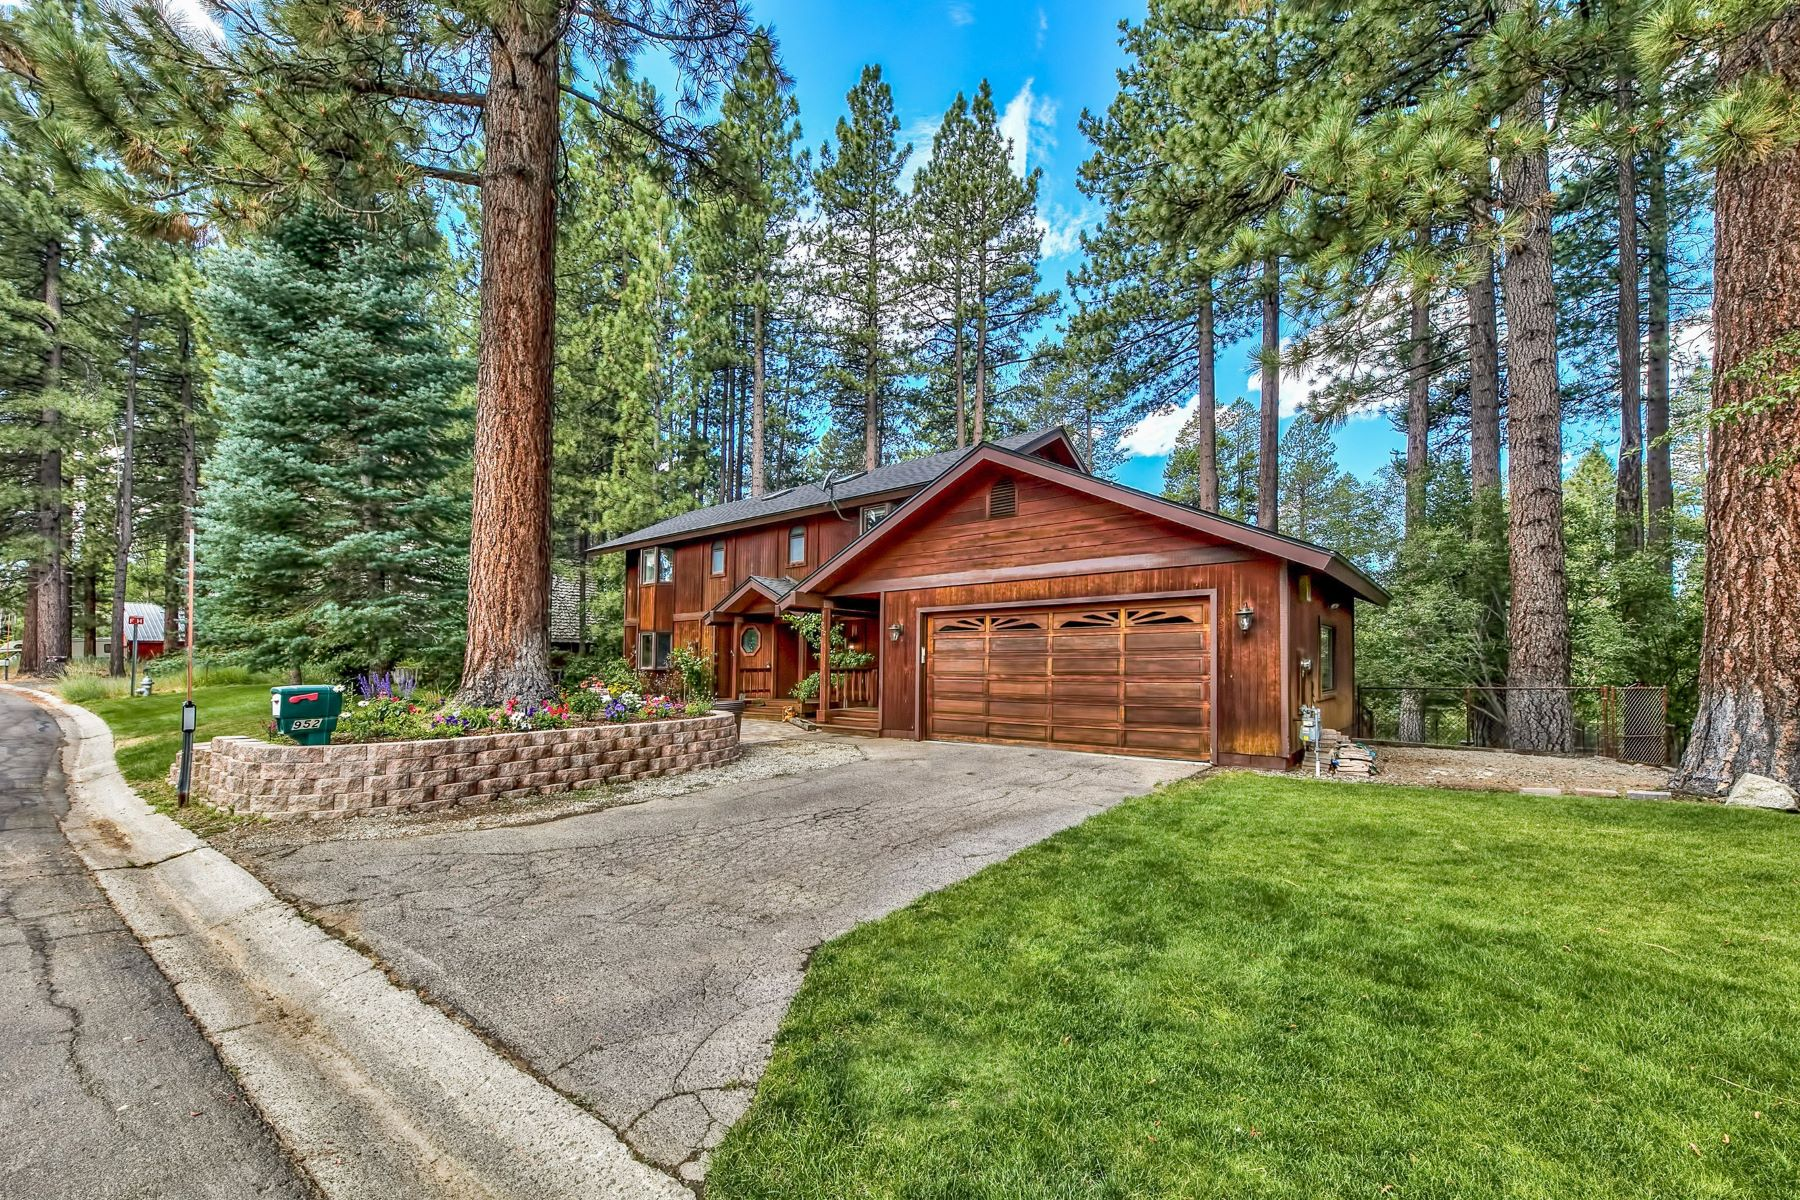 Single Family Homes for Active at 952 Silverwood Circle, South Lake Tahoe, CA 96150 952 Silverwood Circle South Lake Tahoe, California 96150 United States